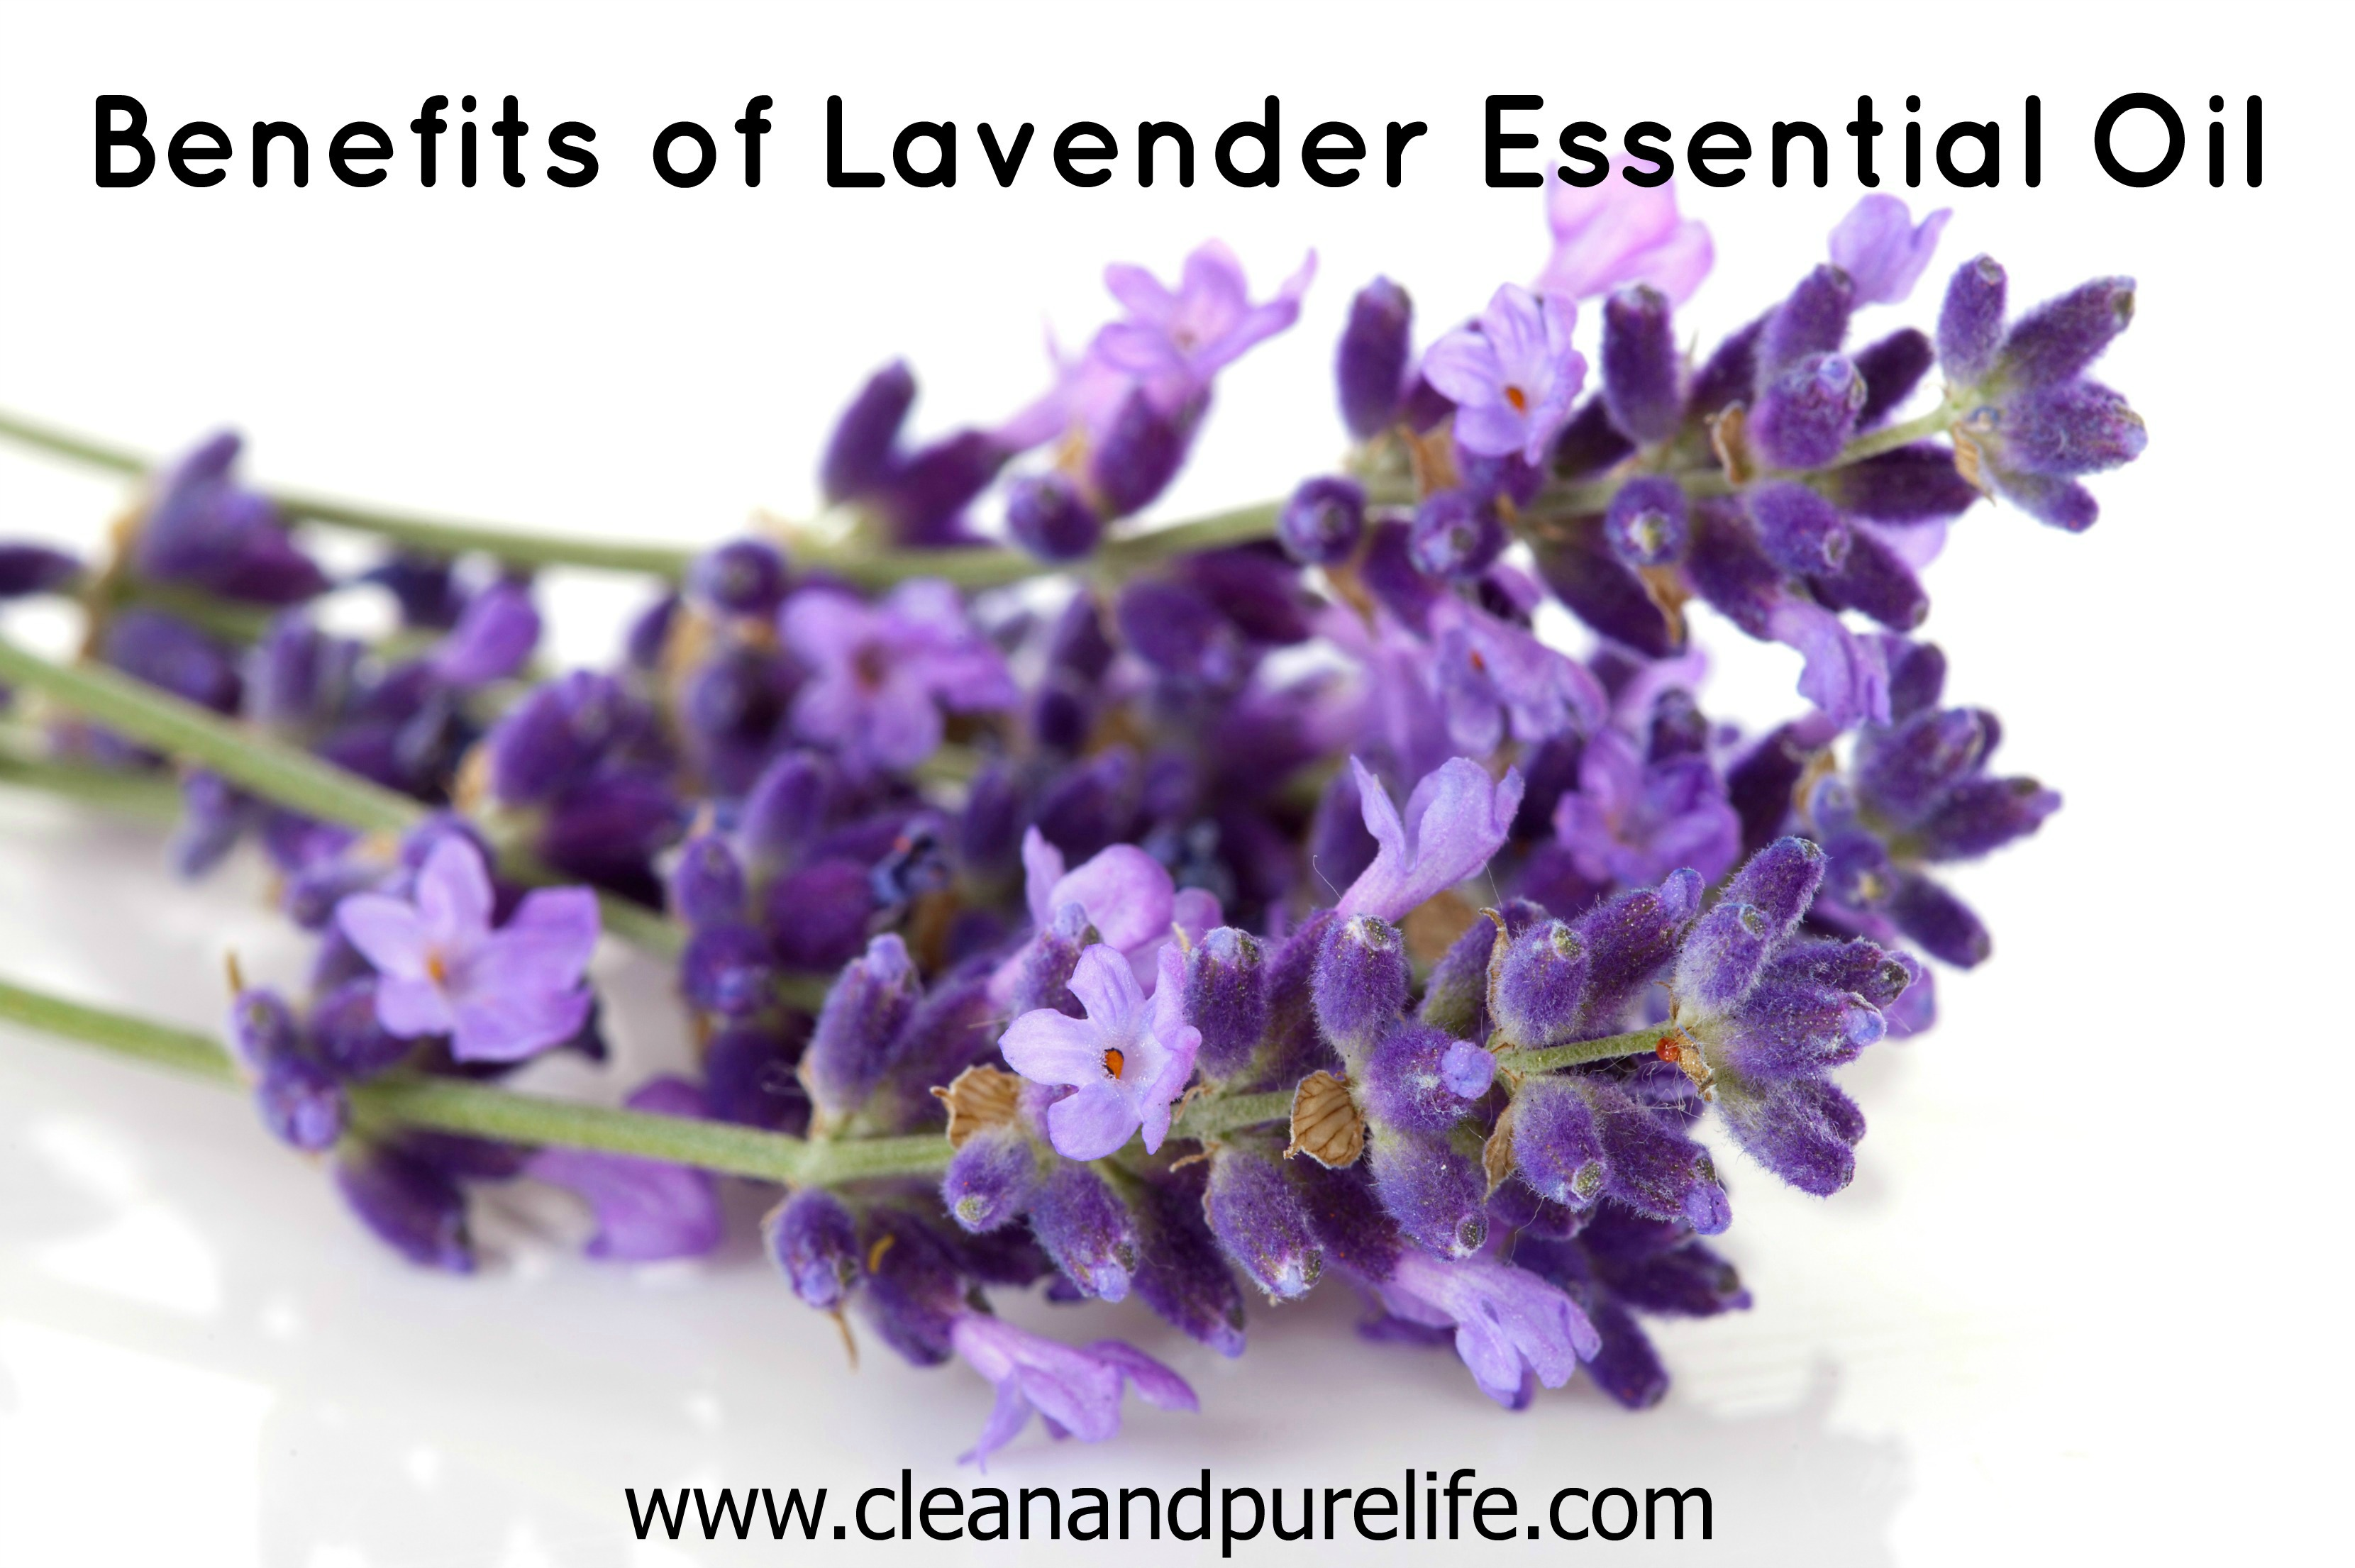 VARIOUS LAVENDER OIL BENEFITS